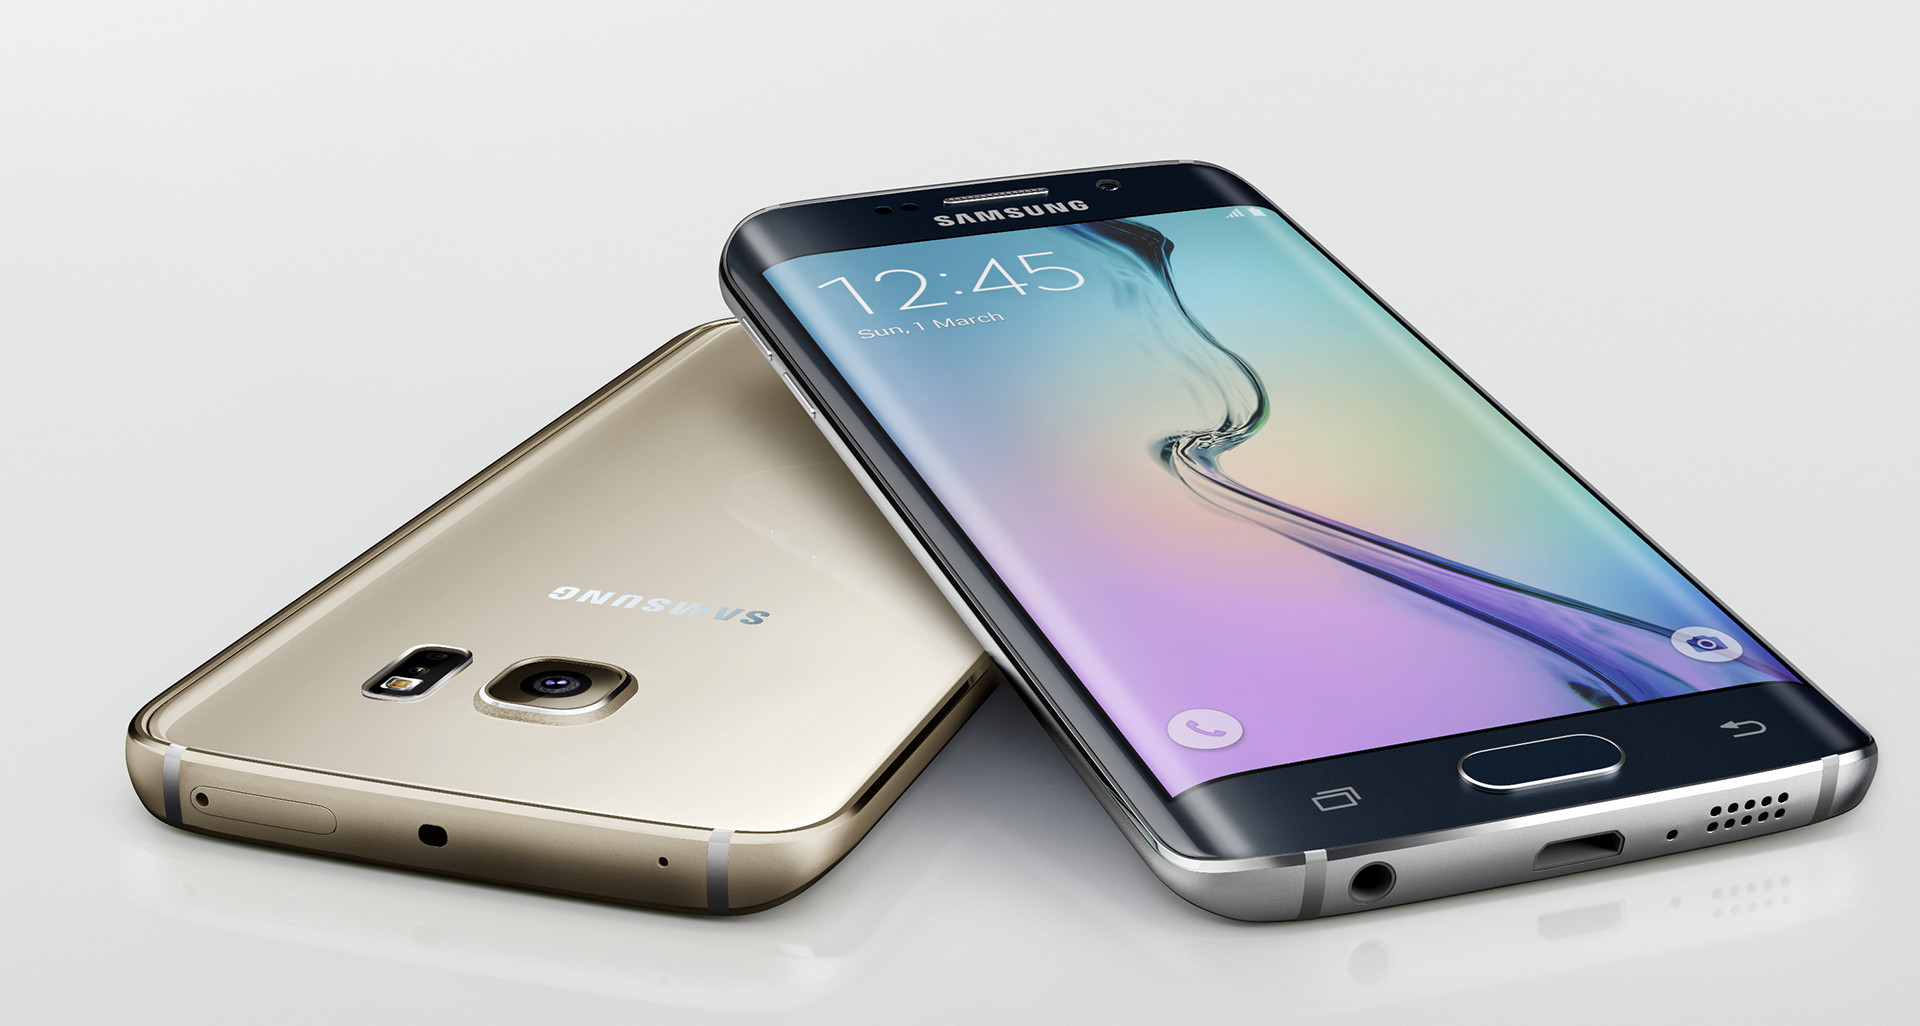 August 2017 Security Update for GalaxyS6